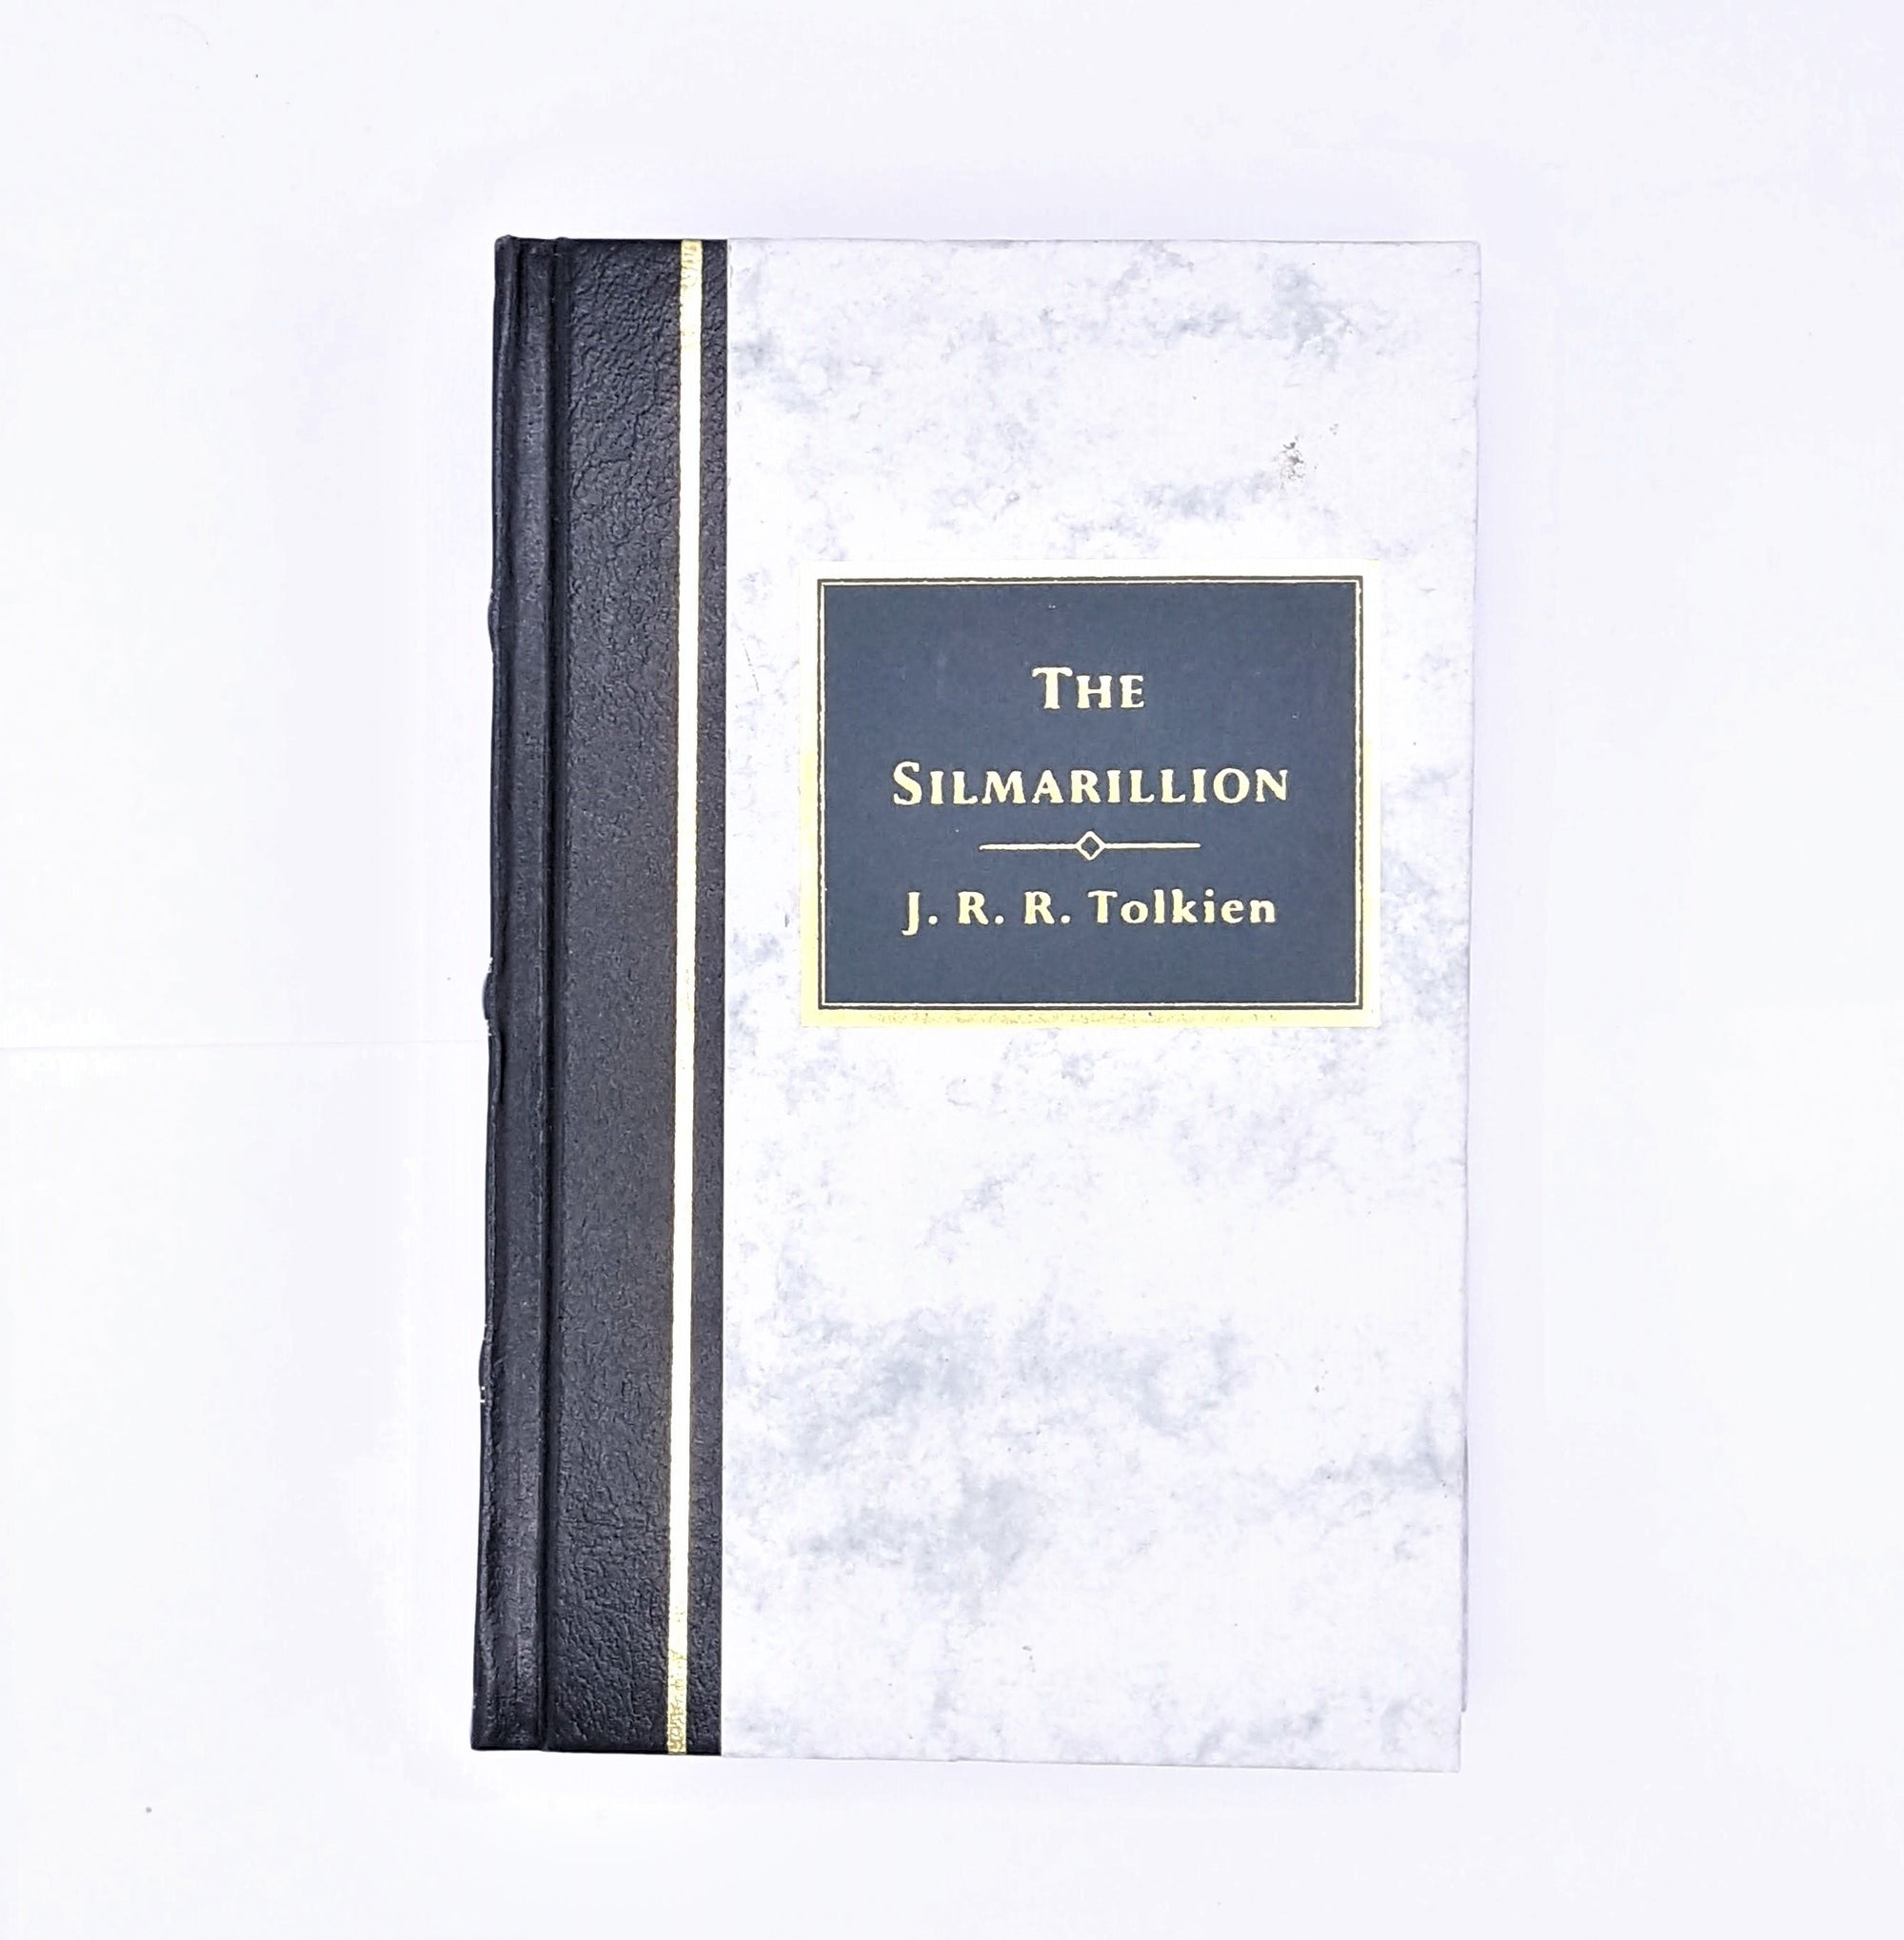 J.R.R. Tolkien's The Silmarillion 1990